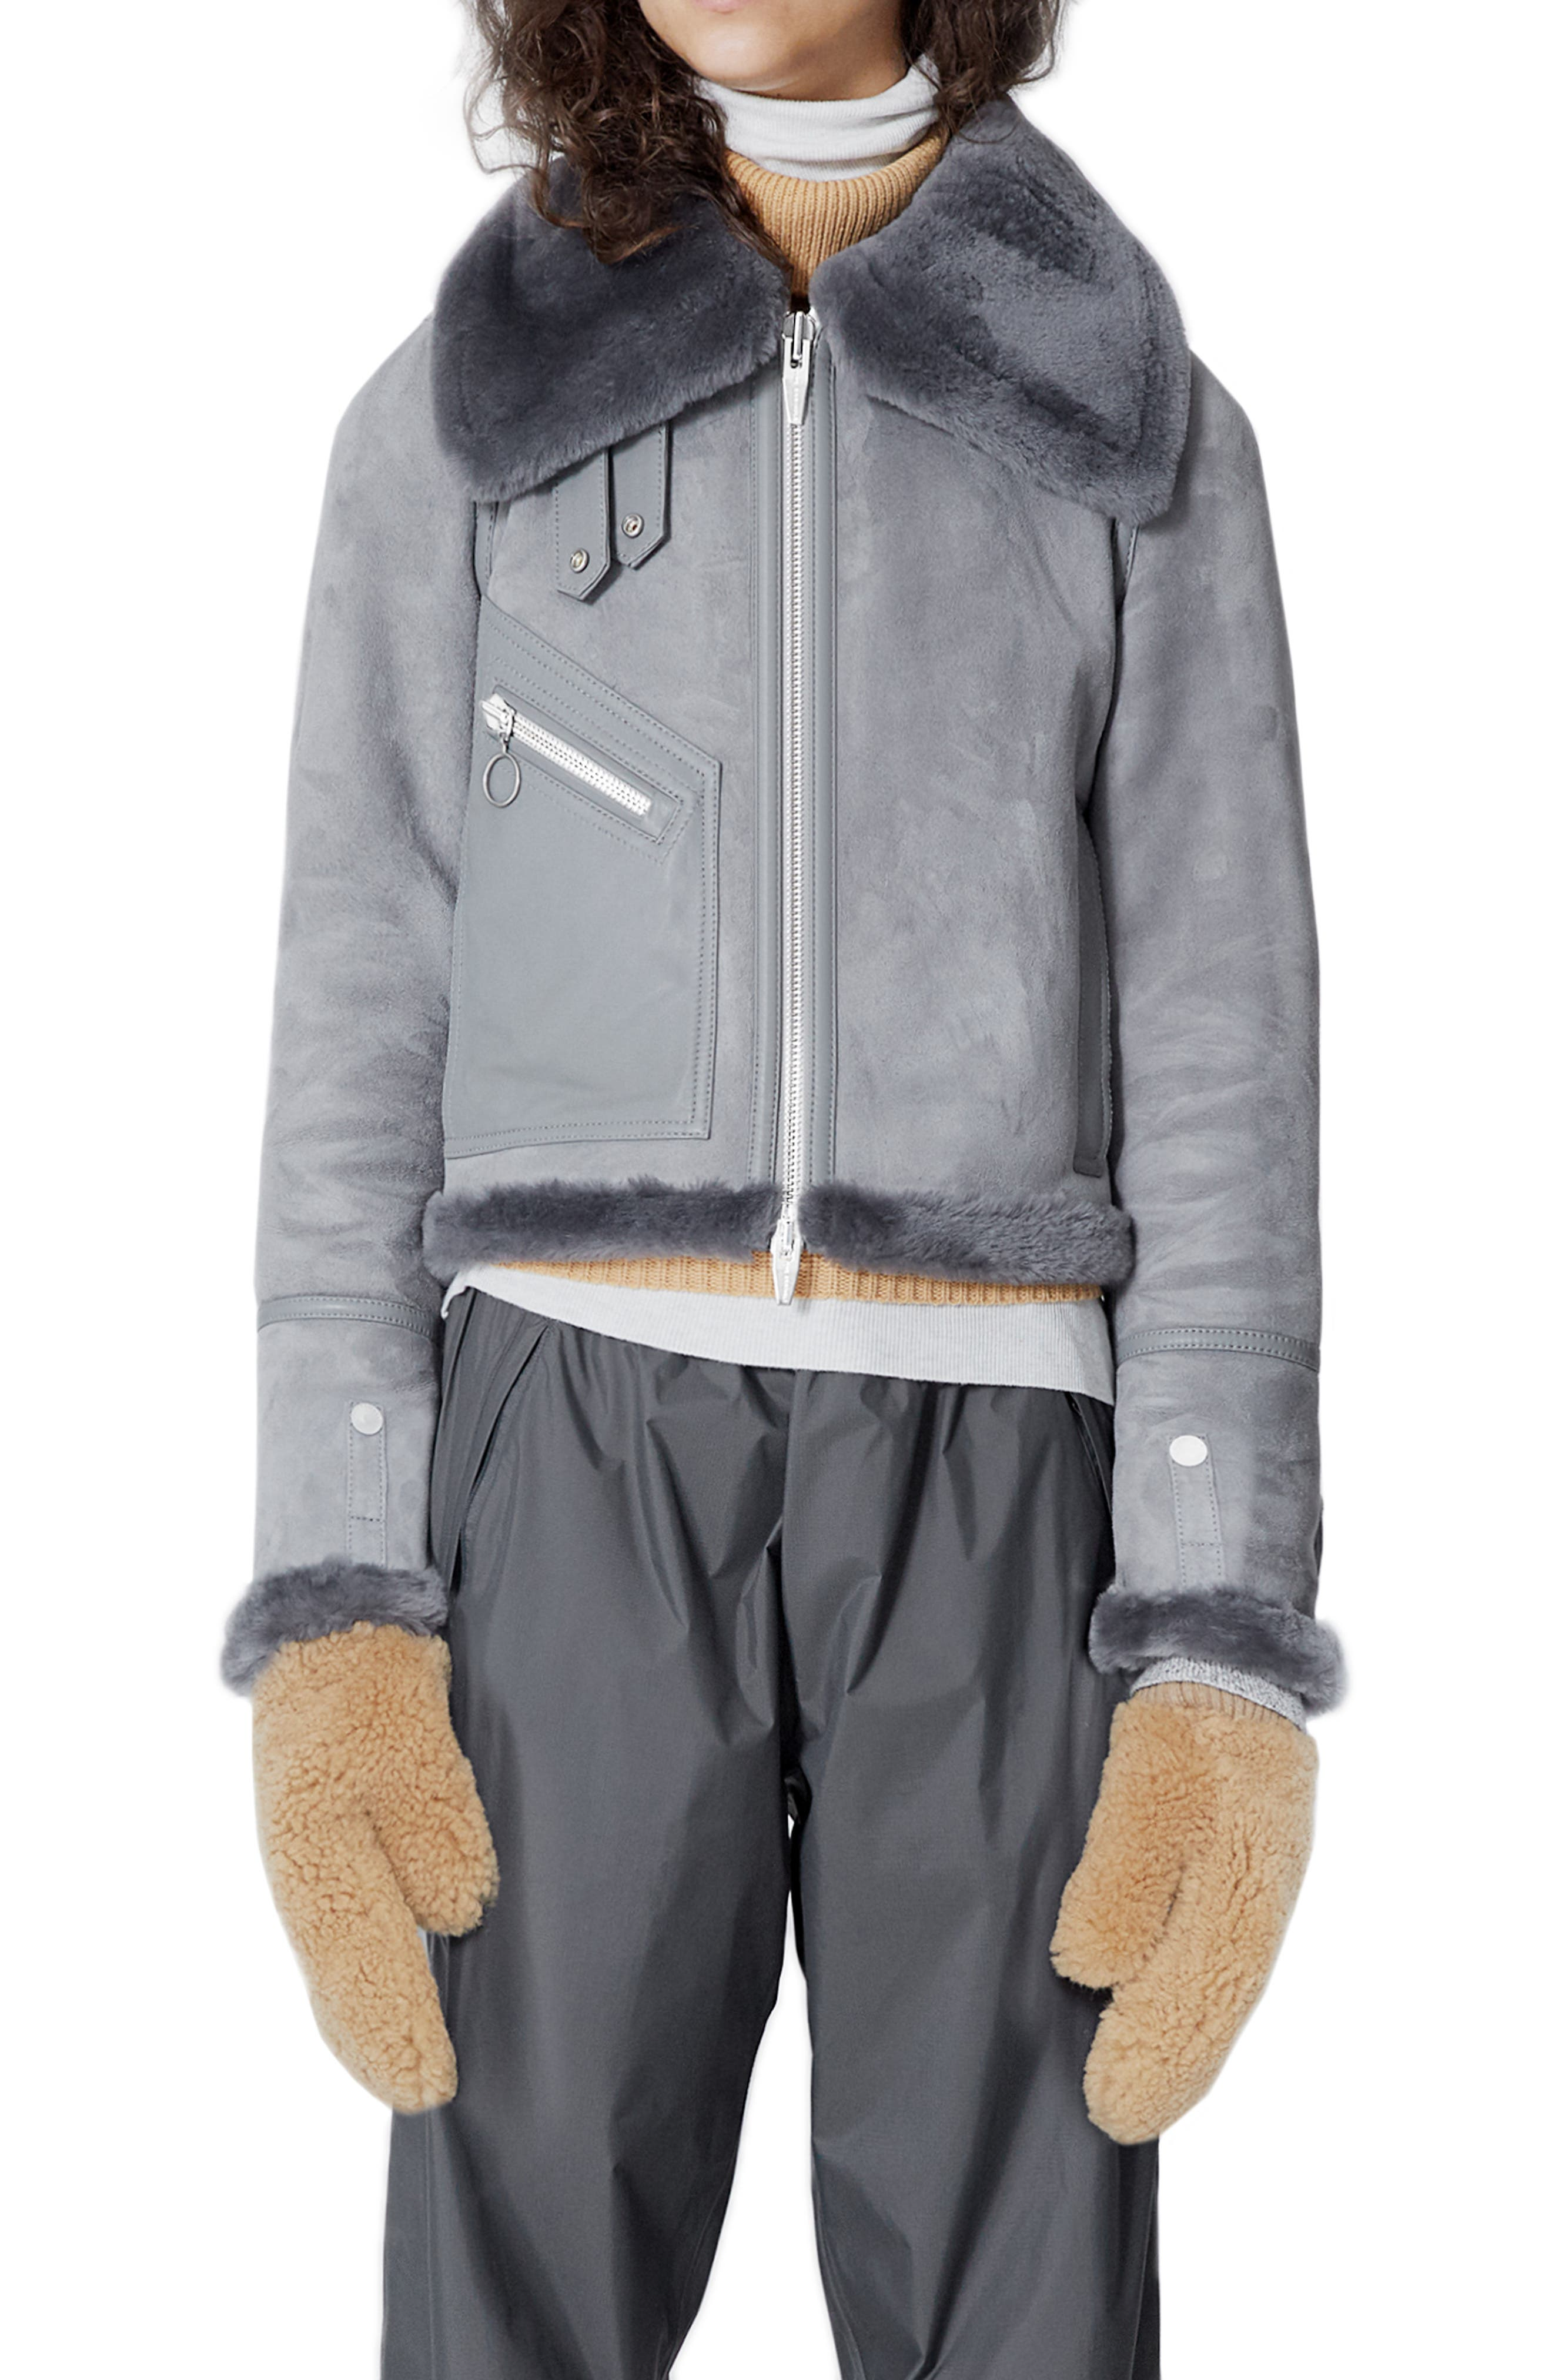 THE ARRIVALS Moya Mini Leather & Genuine Shearling Jacket in Gray